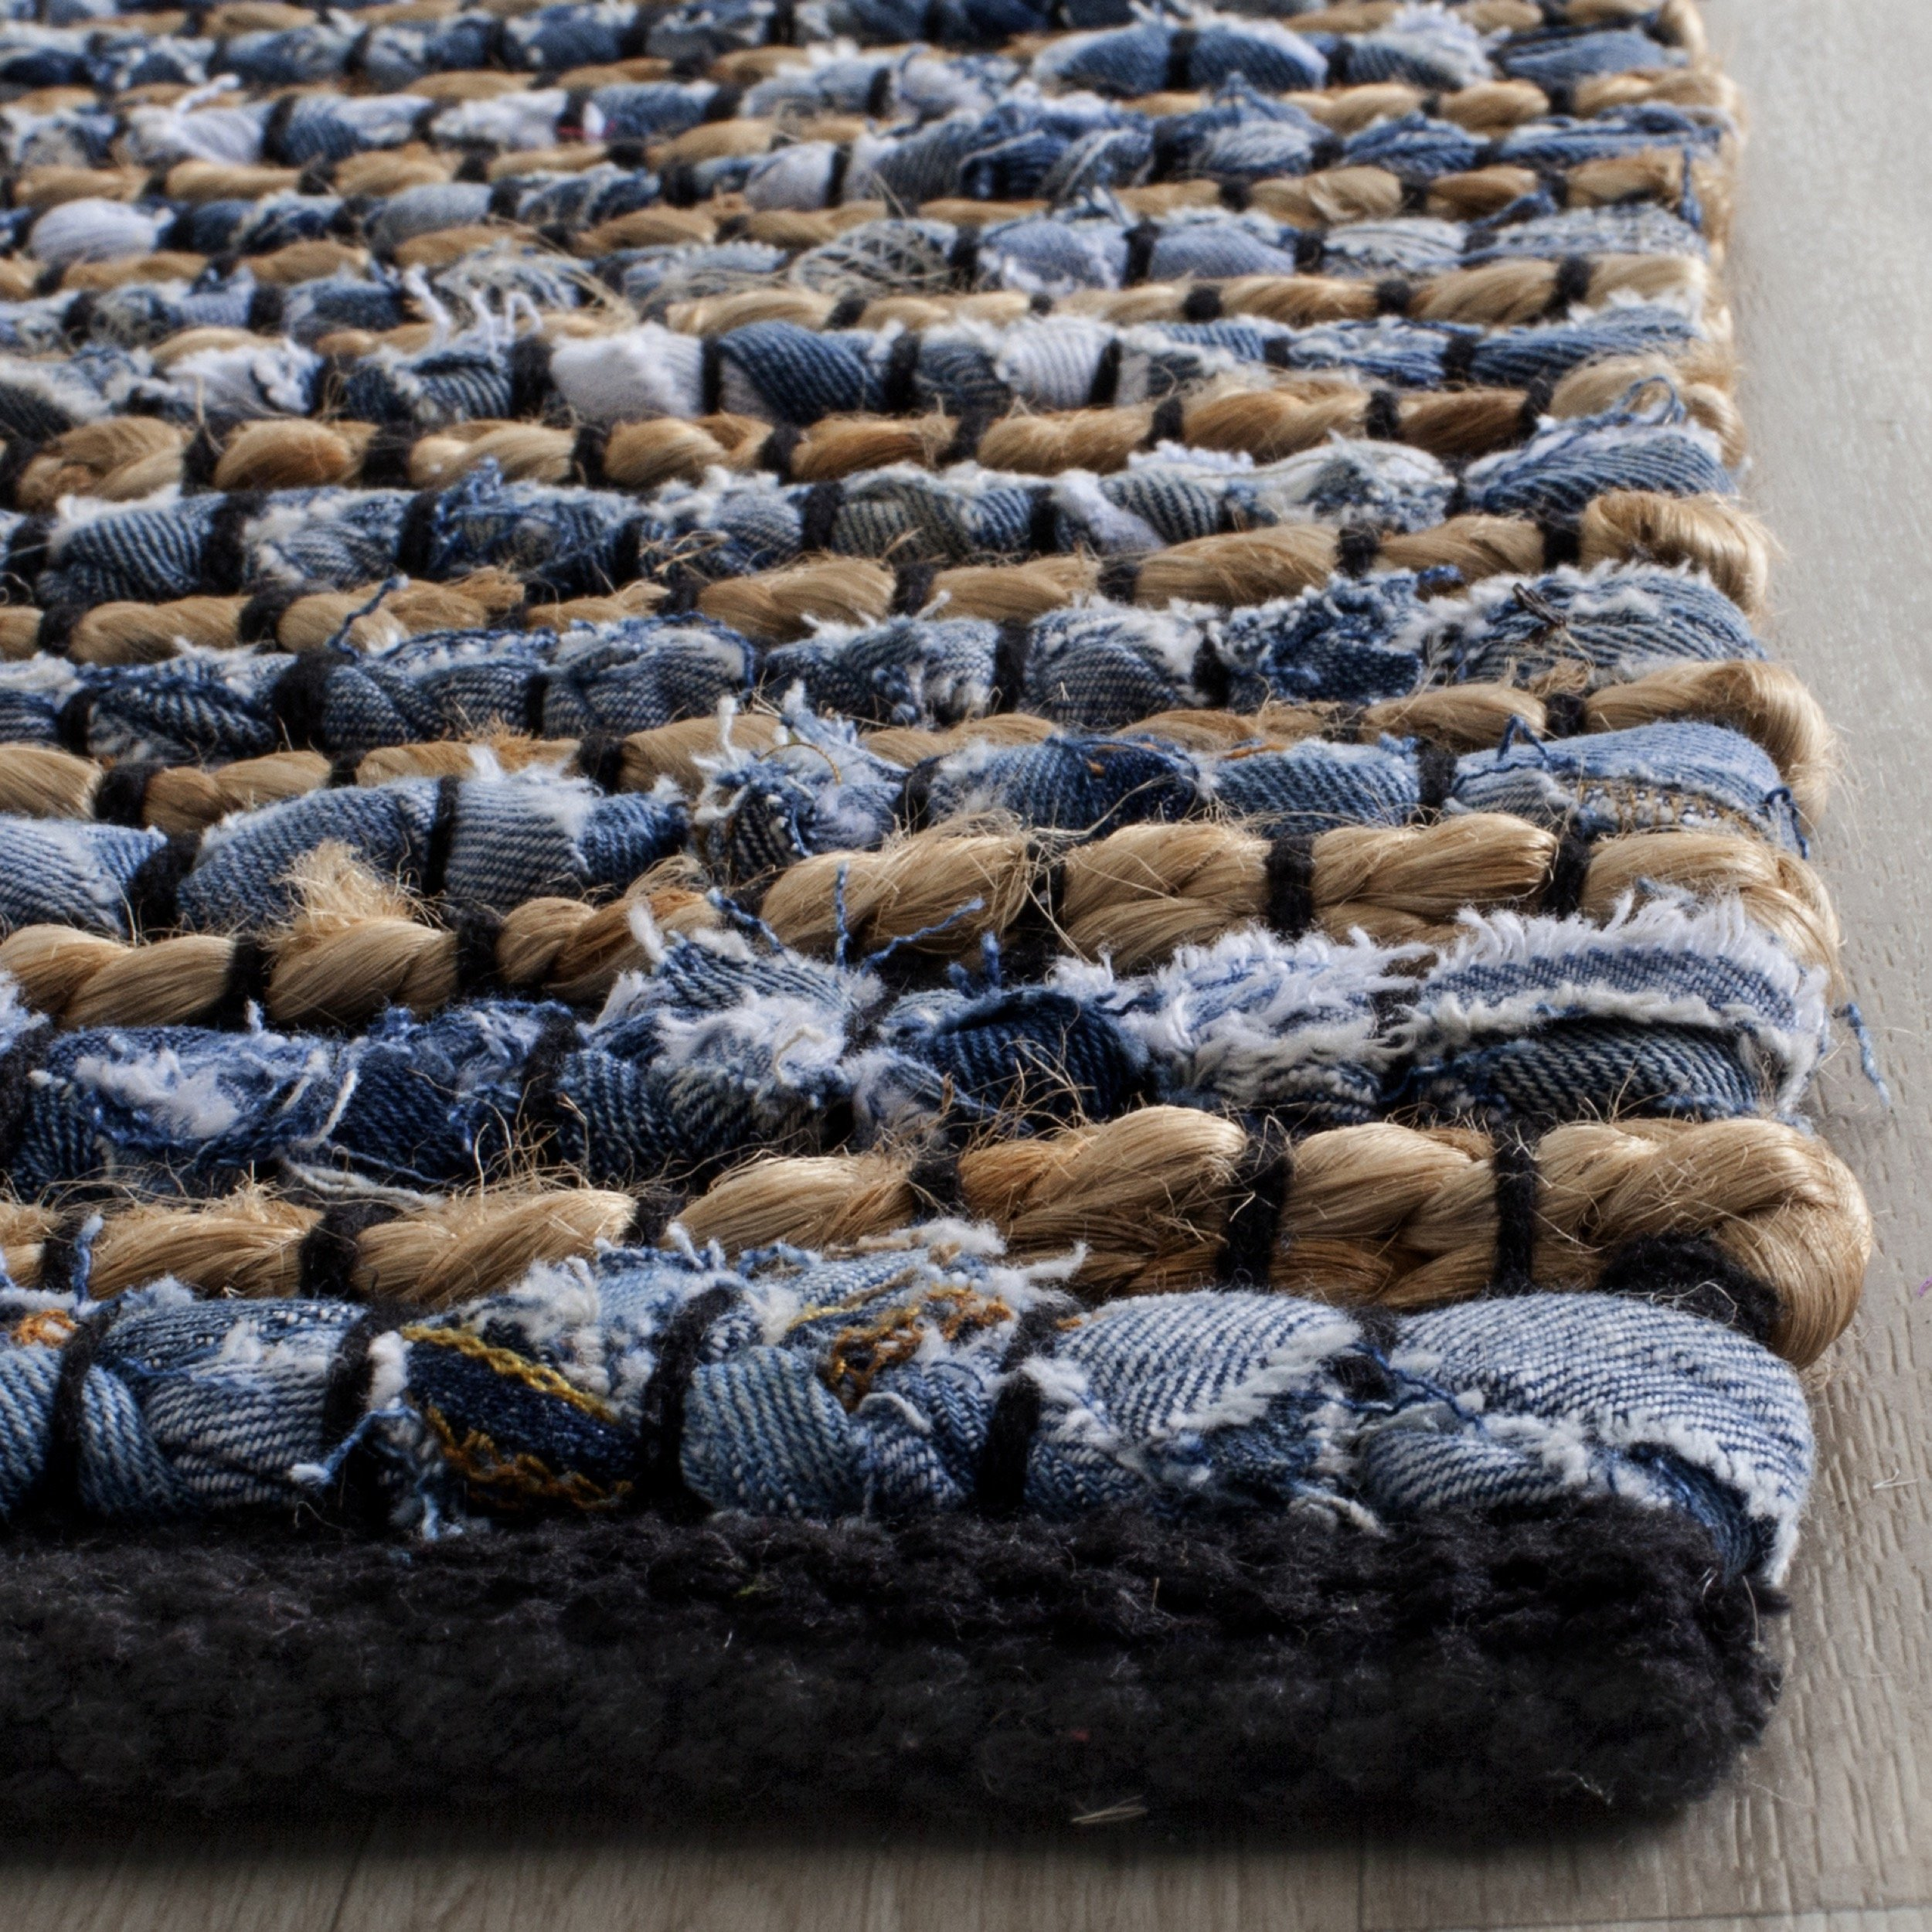 Safavieh Cape Cod Collection CAP365A Hand Woven Blue Jute Runner (2'3'' x 6') by Safavieh (Image #2)